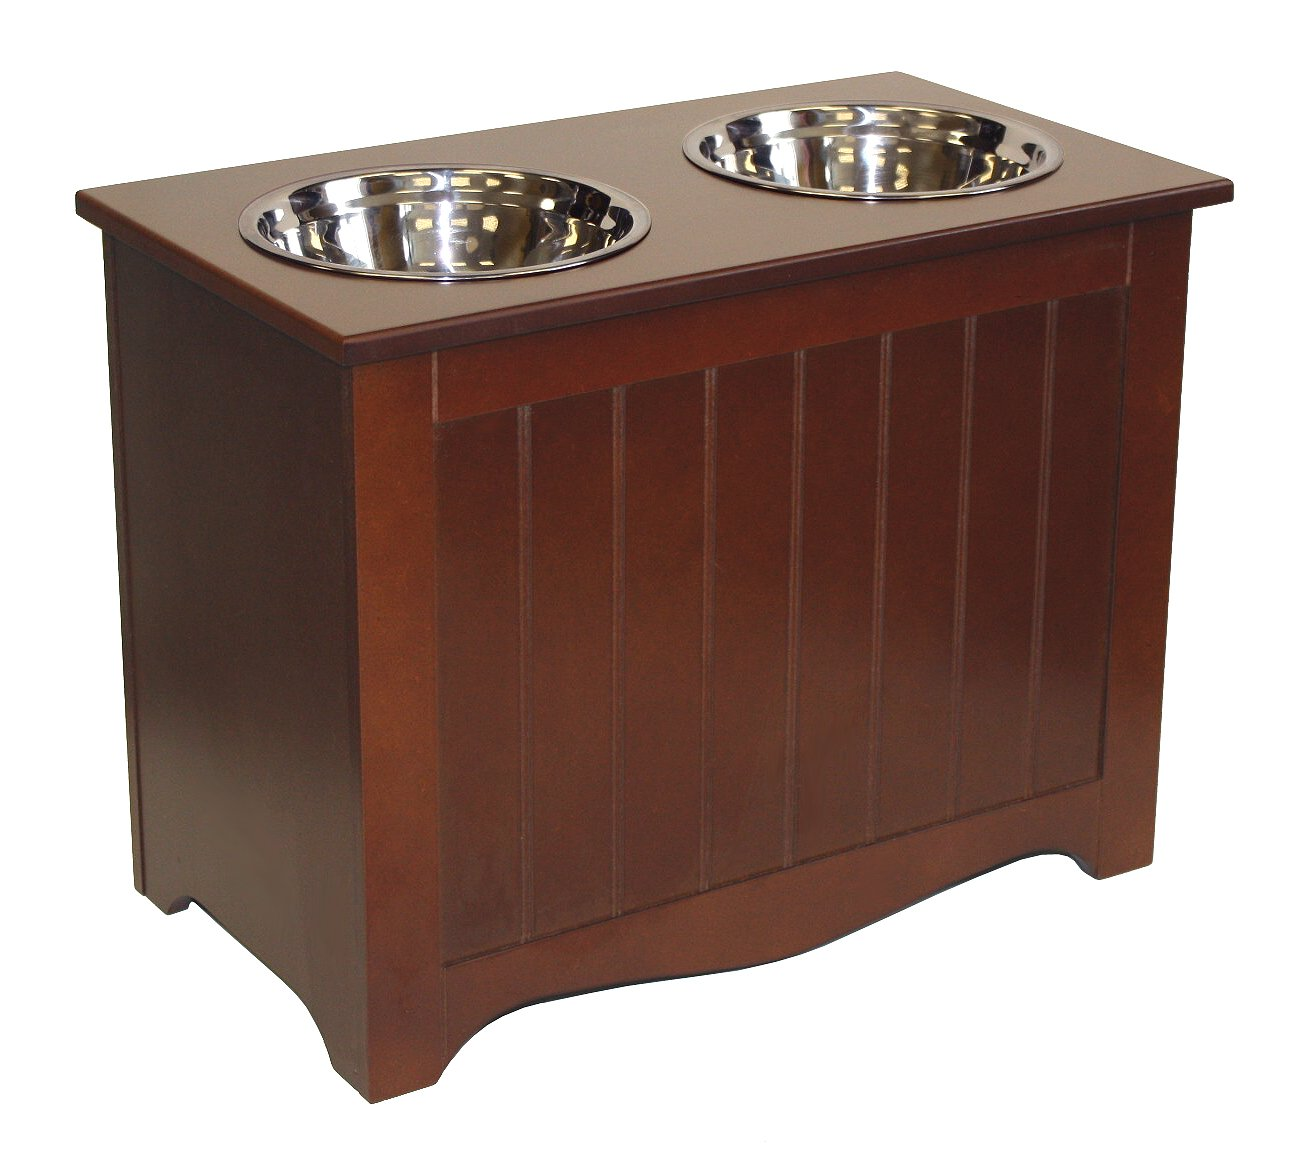 APetProject Large Pet Food Server & Storage Box (Chocolate Brown)LIMIT 1 PER ORDER